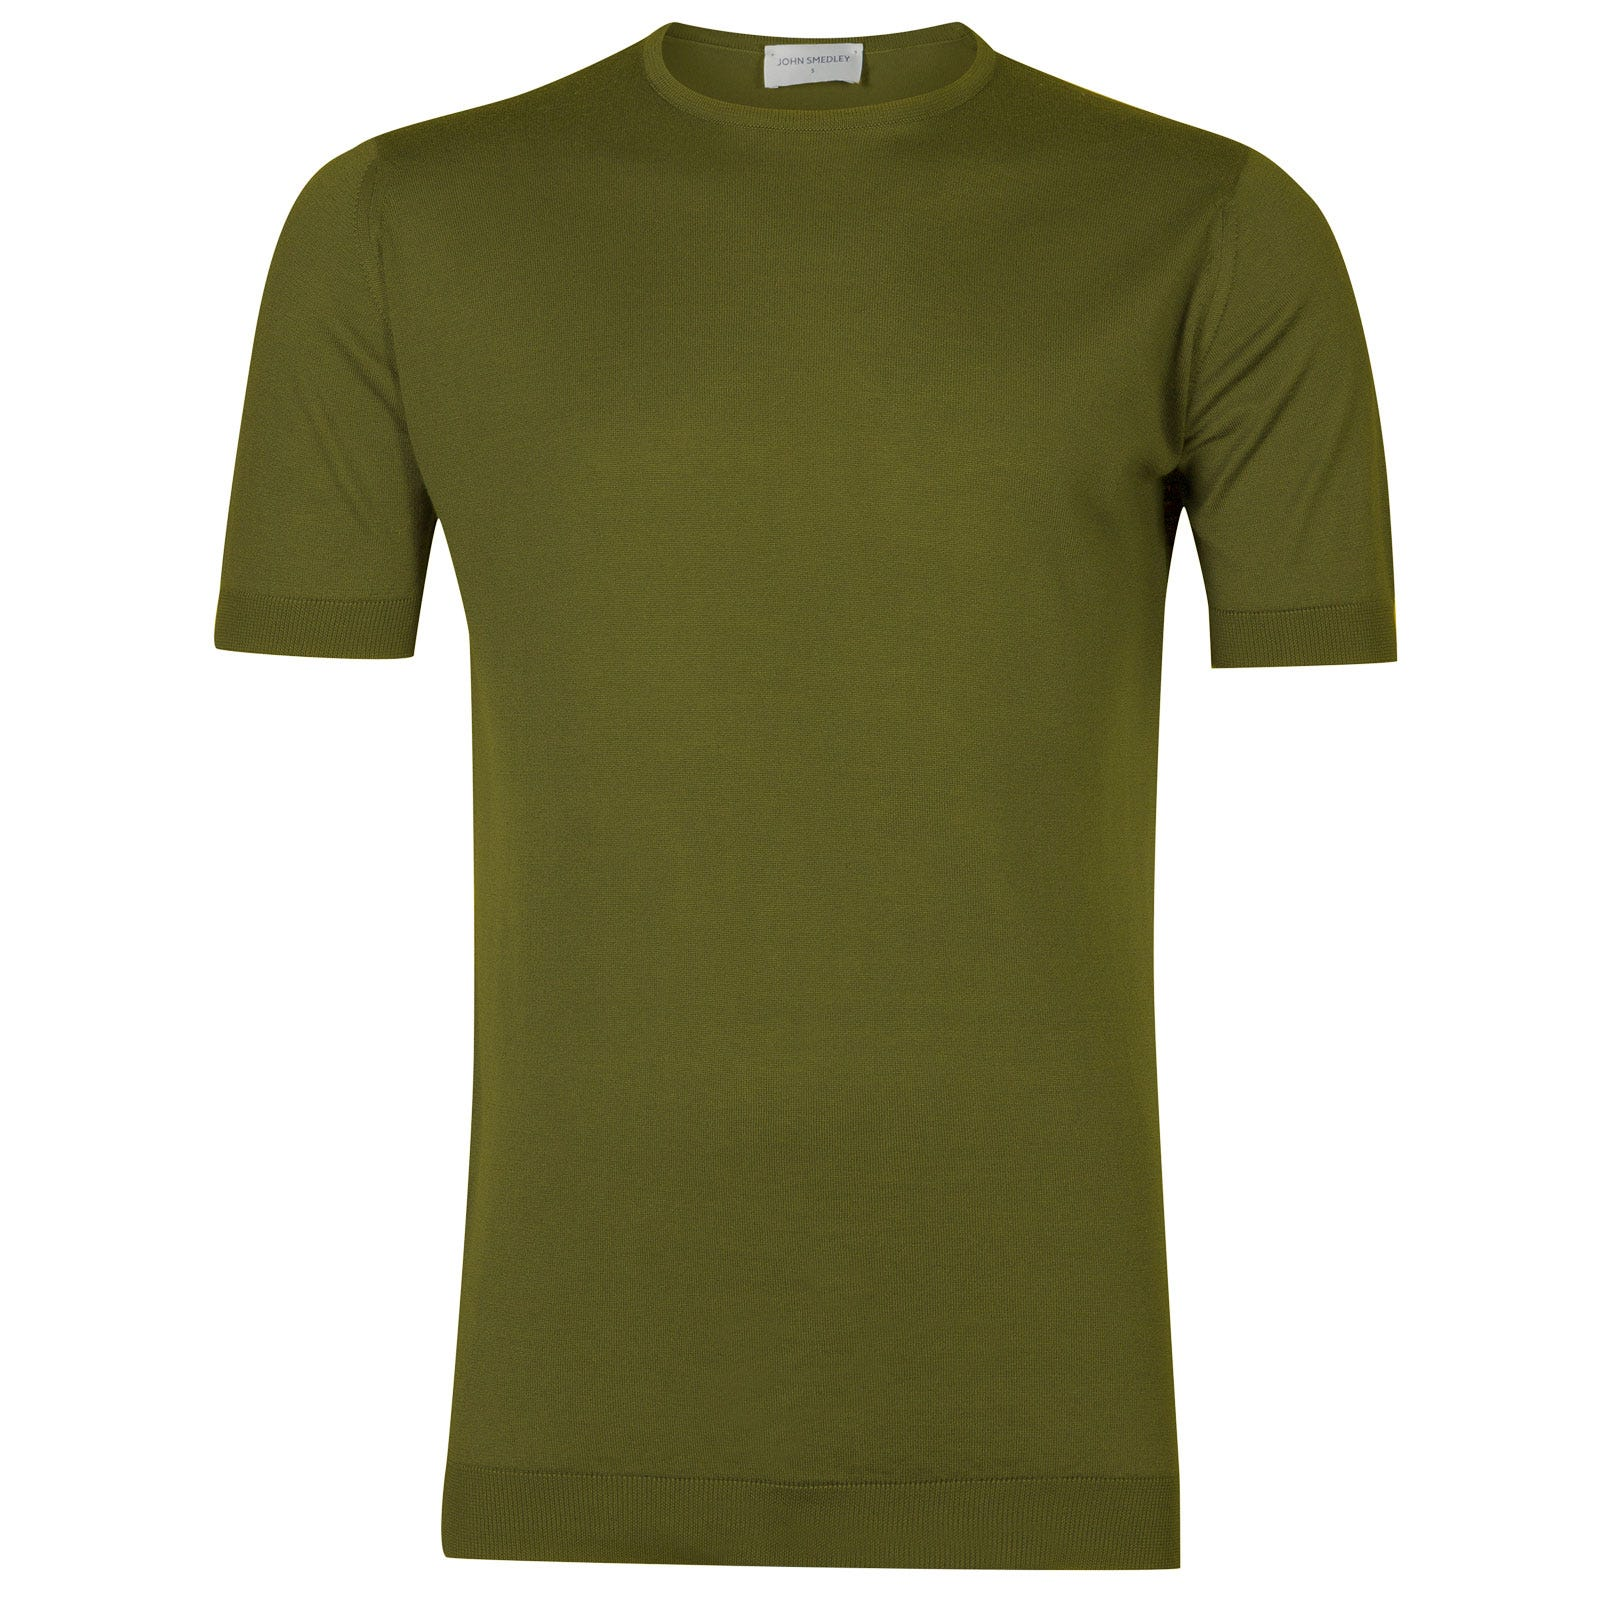 John Smedley belden Sea Island Cotton T-shirt in Lumsdale Green-XL